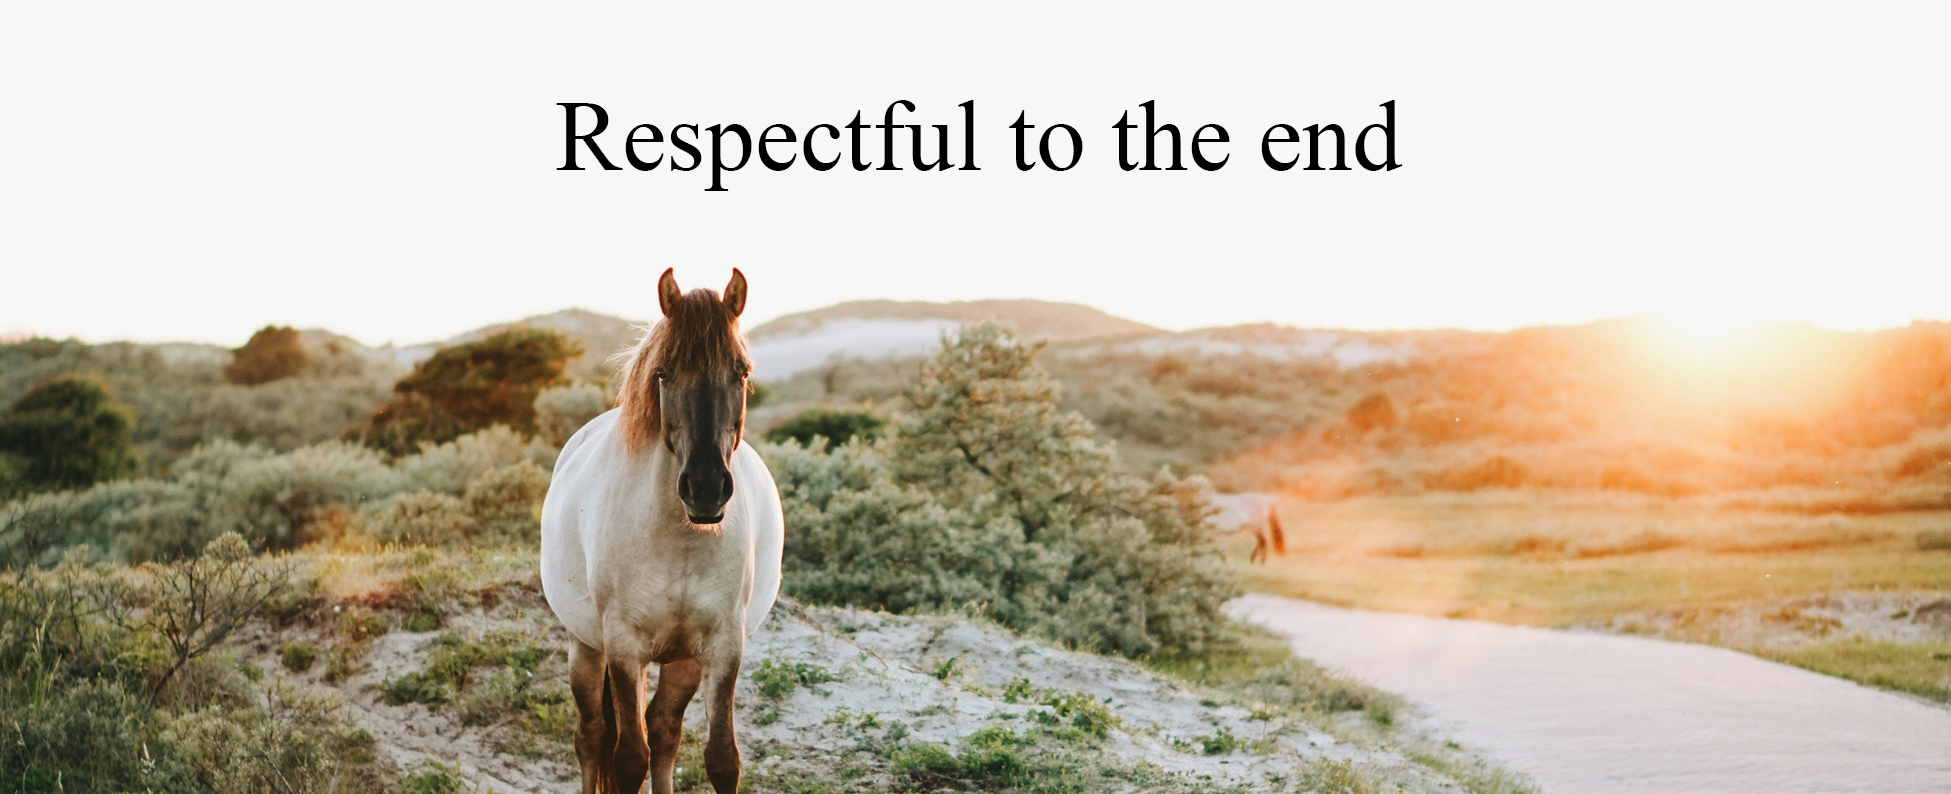 Terms and Conditions - respectful to the end - Equine end of life